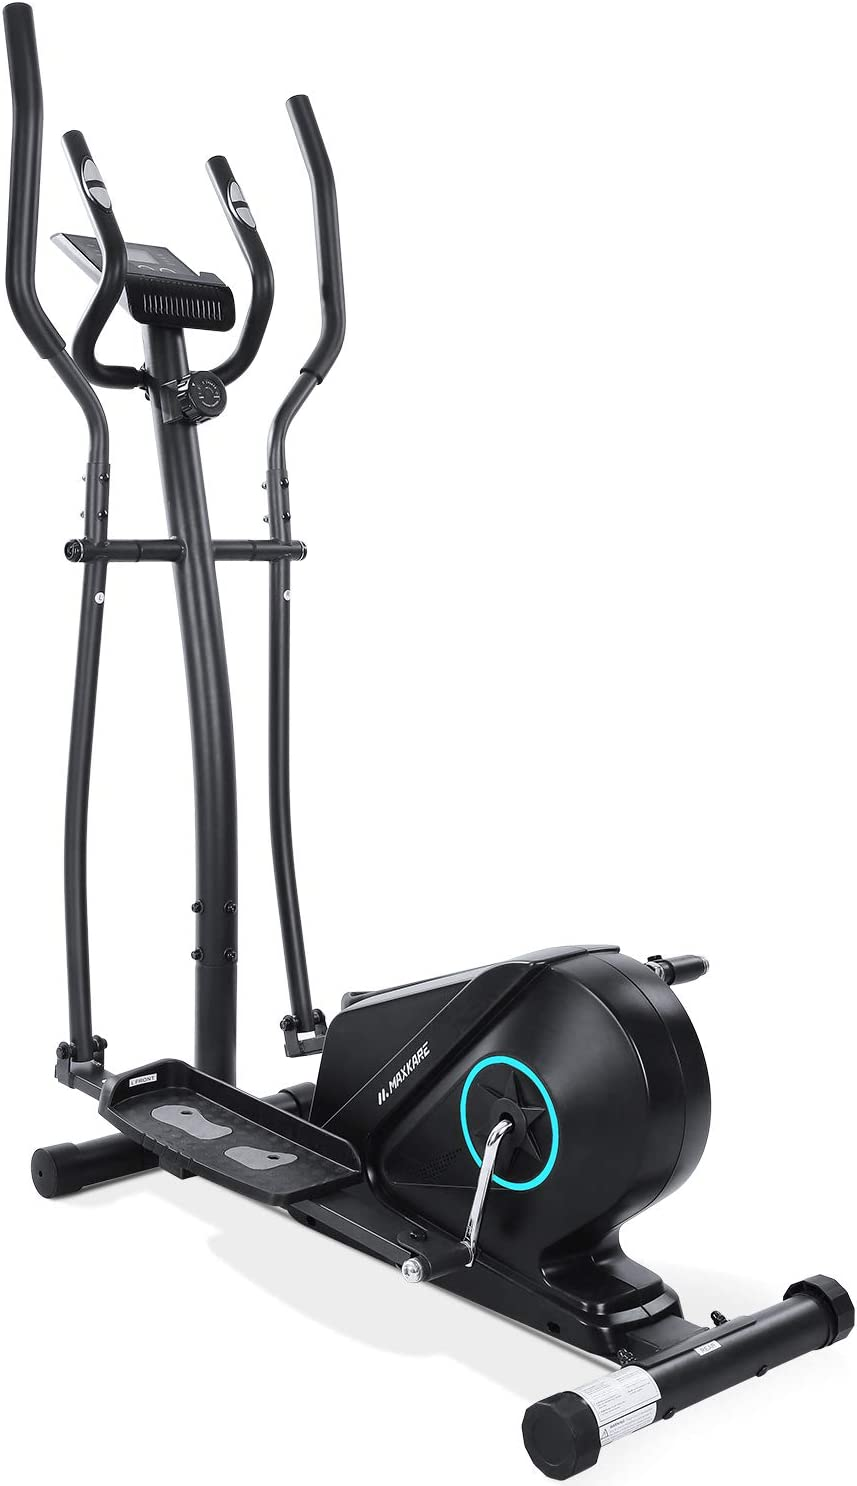 MaxKare Elliptical Machine Trainer Elliptical Exercise Machine for Home Use Life Fitness Bike with 5KG flywheel Magnetic Resistance Heavy Duty Extra-Large Pedal Pulse LCD Monitor Quiet Smooth